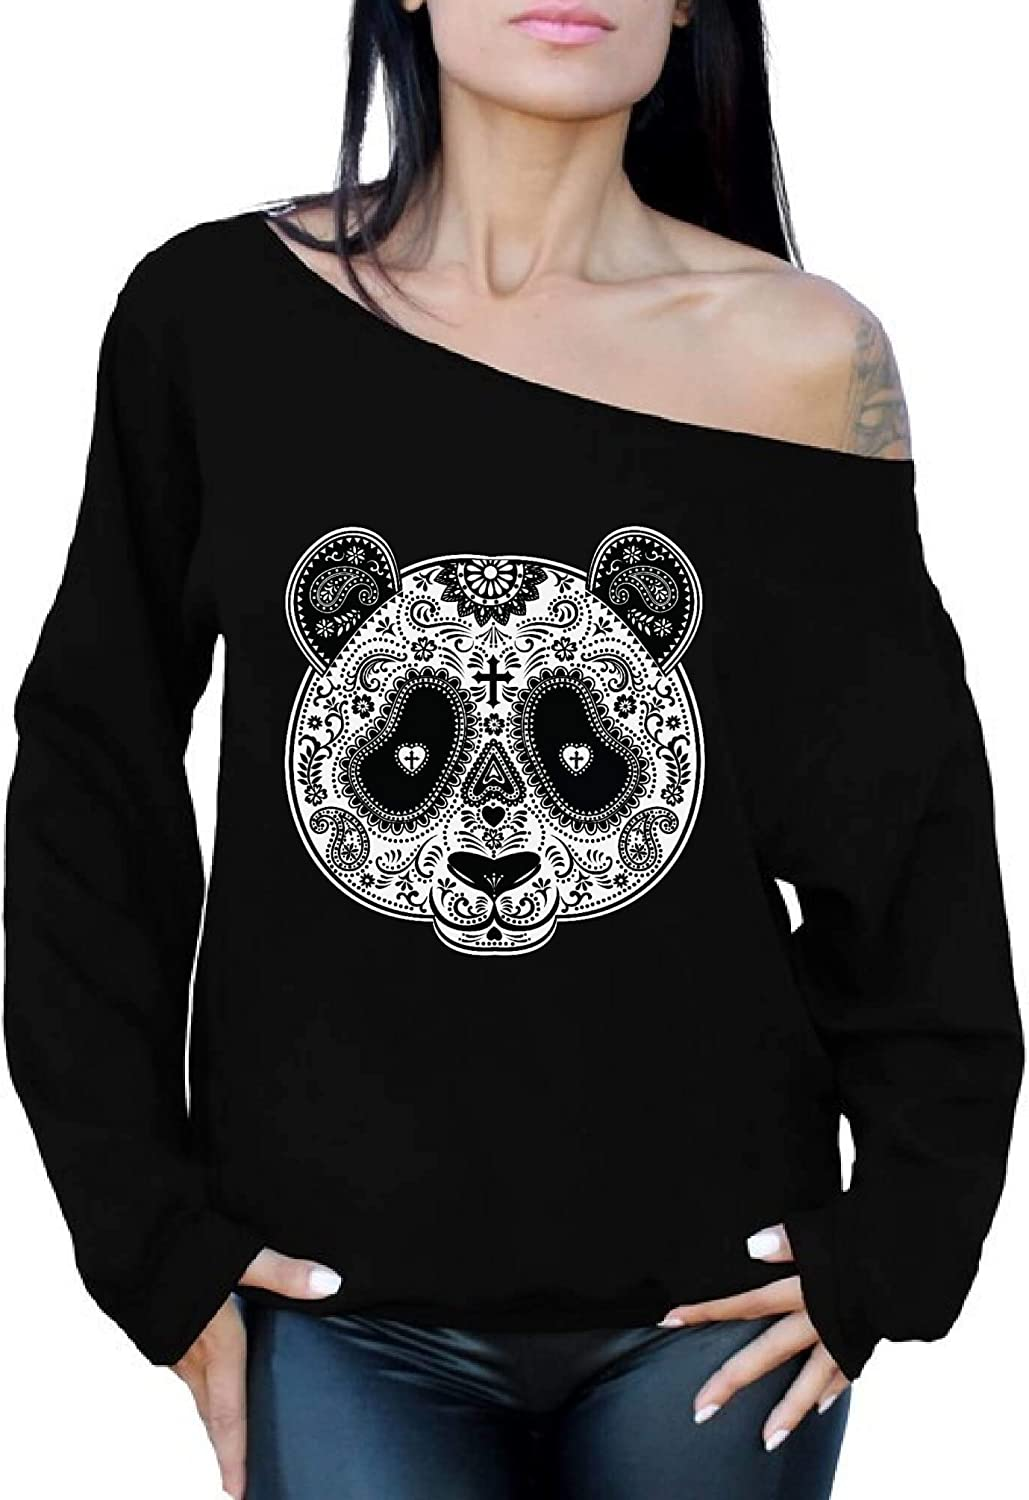 Awkwardstyles Rose Eyes Skull Off The Shoulder Oversized Sweatshirt Sugar Skull